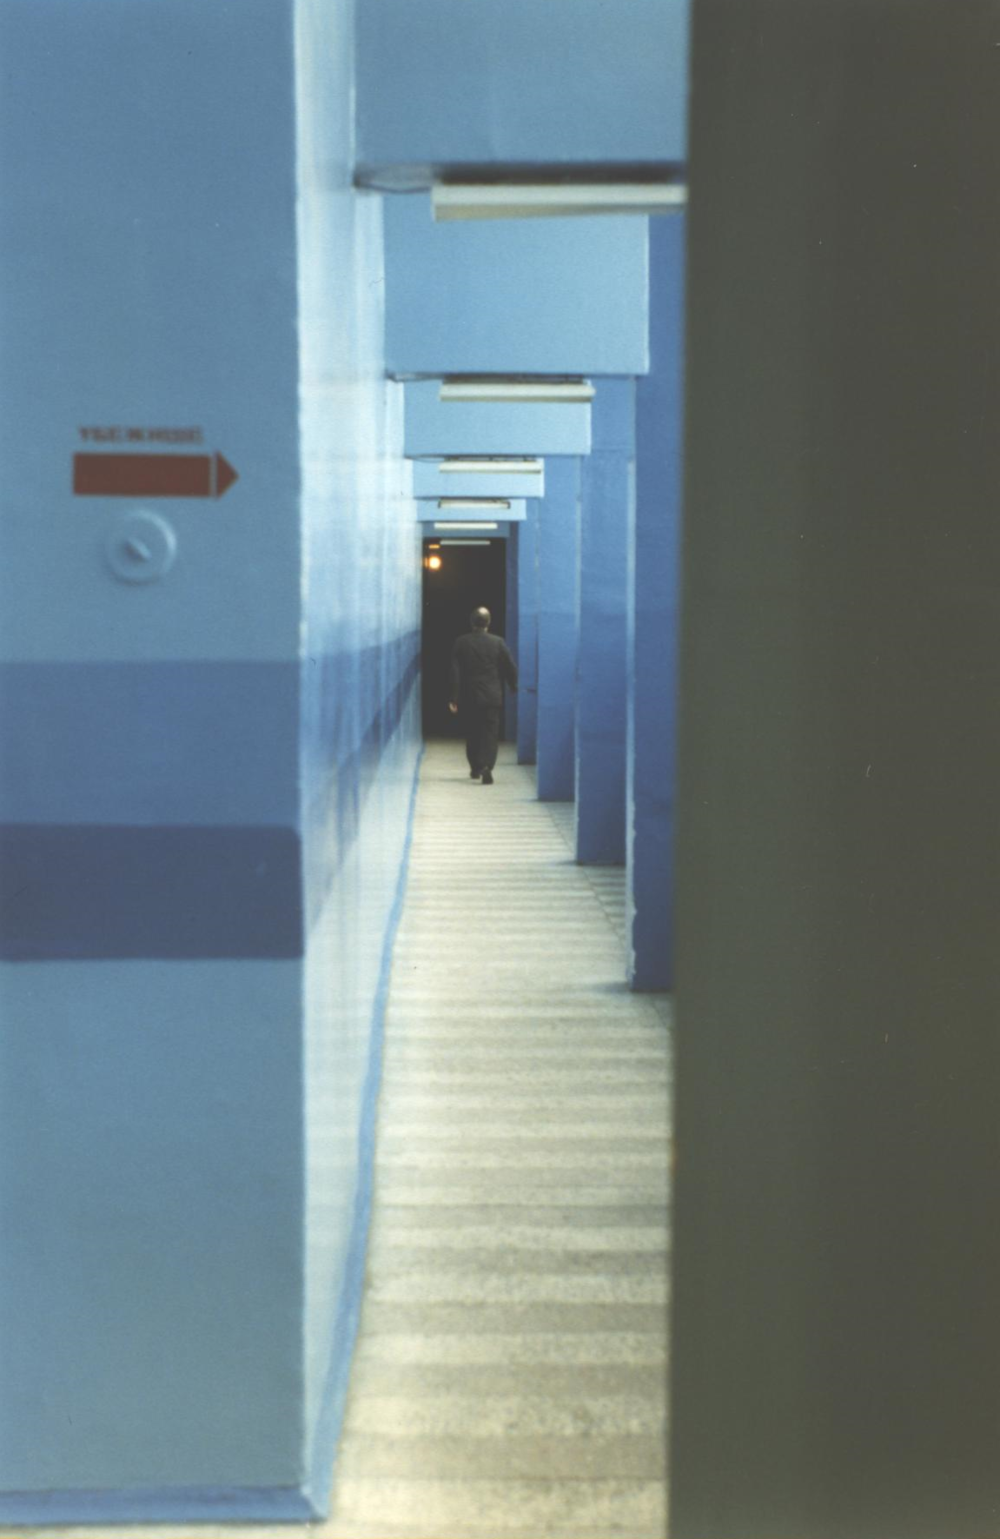 Corridor at the Kola Nuclear Power Plant. (JAMES FLINT)